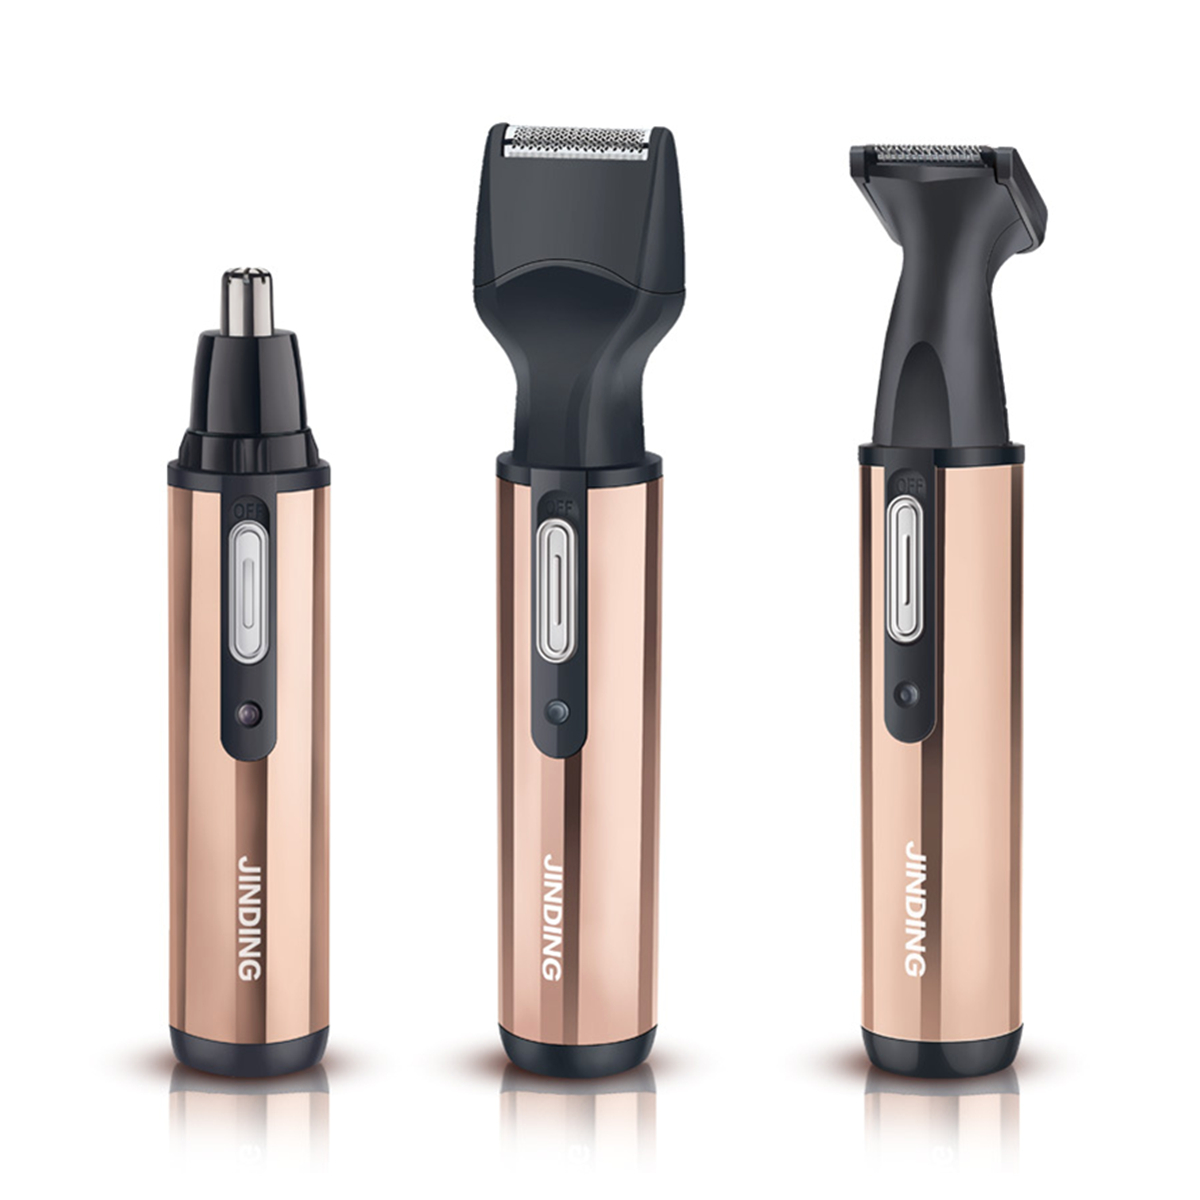 3 In 1 Rechargeable Personal Ear Nose Brow Hair Remove Trimmer Shaver Kits Set